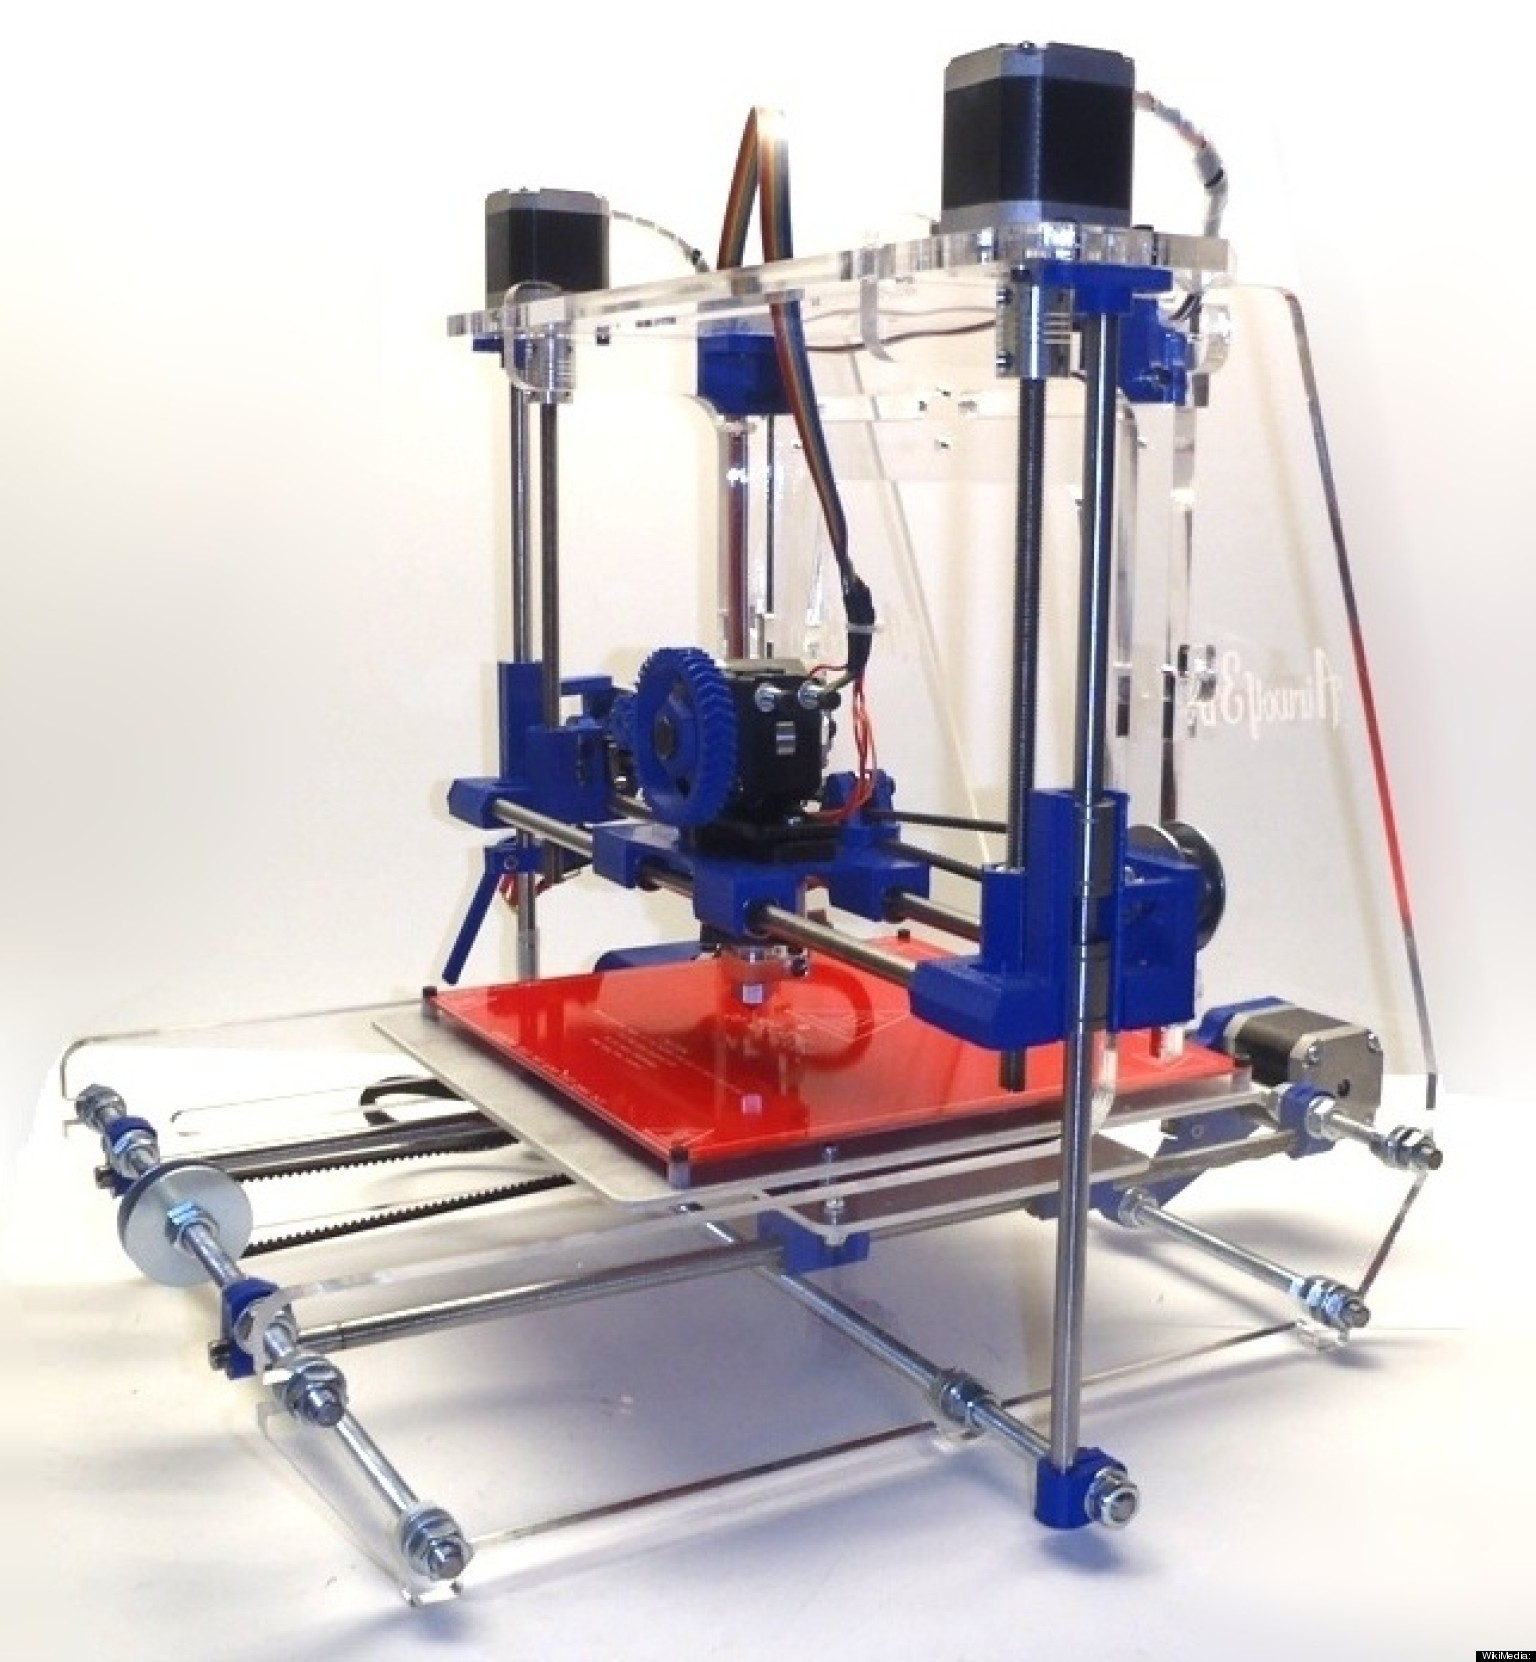 Hybrid 3D Printer Used To Create Cartilage Implants